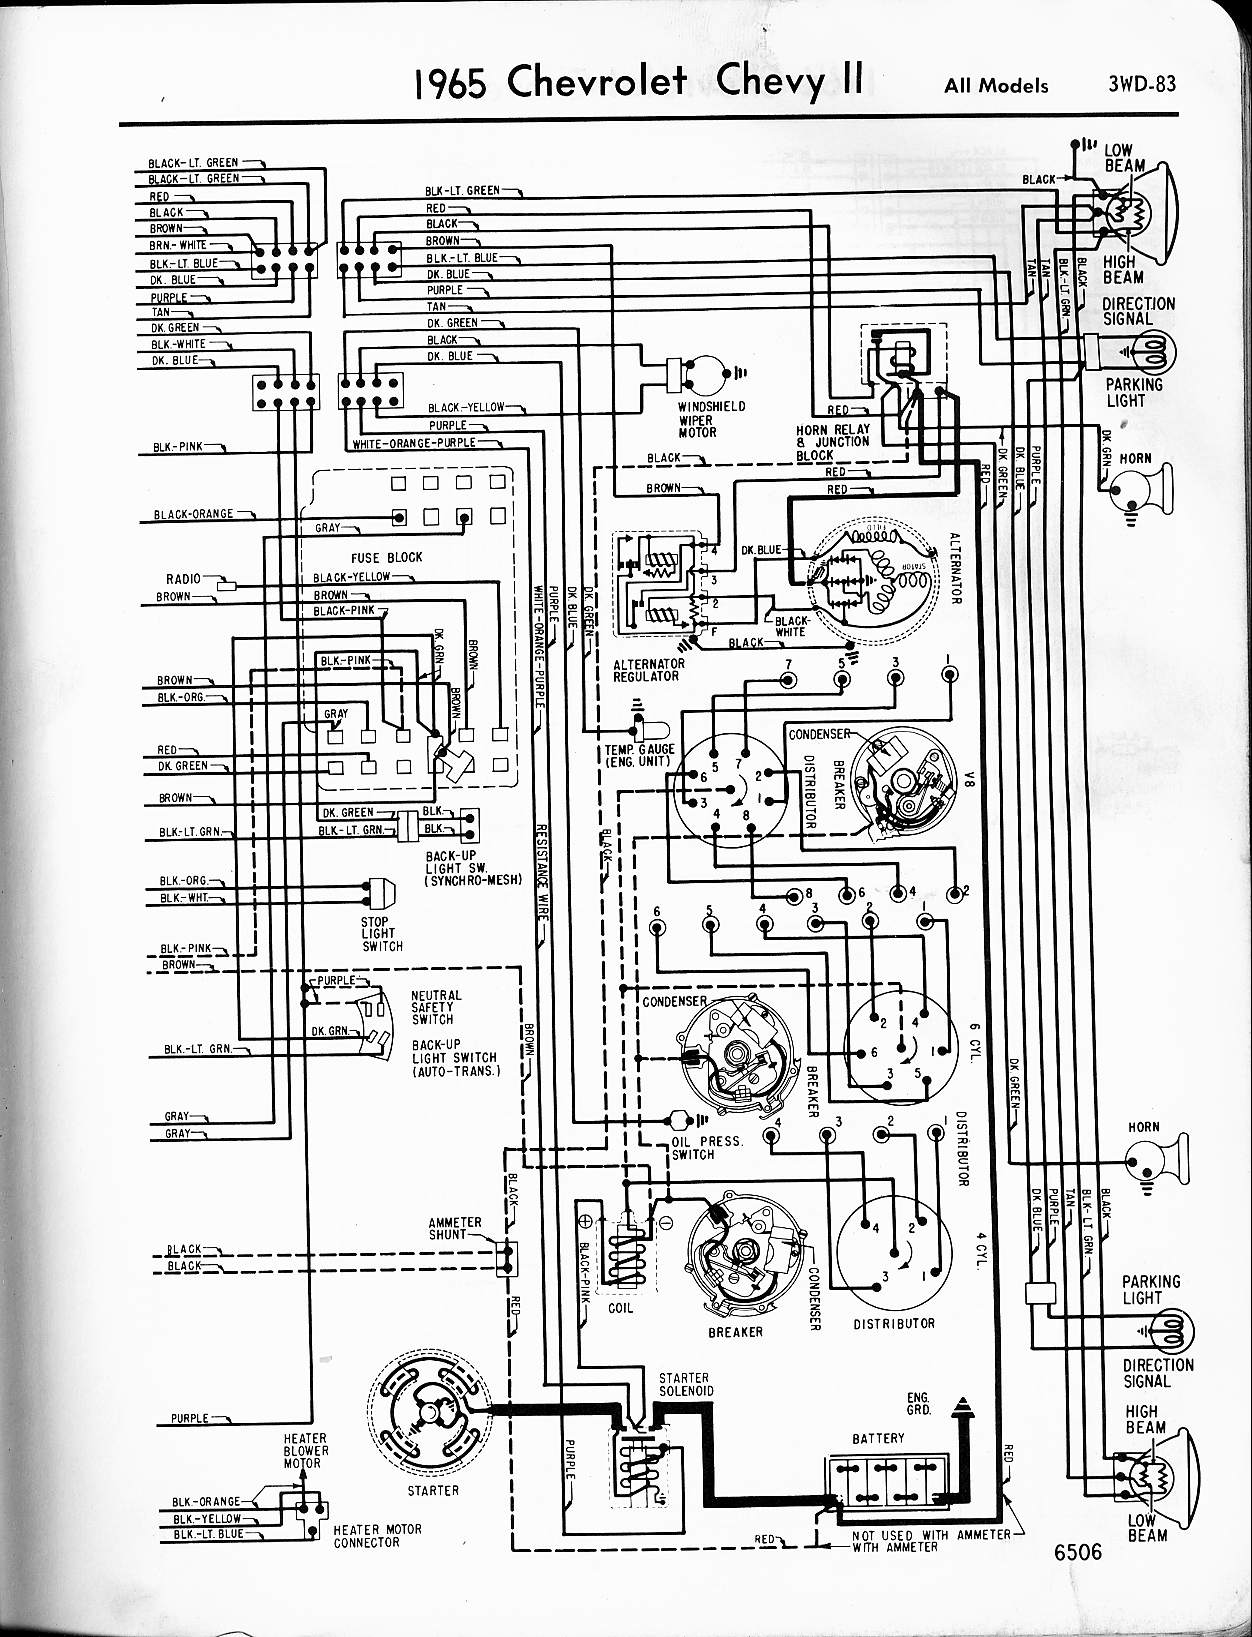 MWireChev65_3WD 083 chevy diagrams 65 corvette wiring diagram at soozxer.org